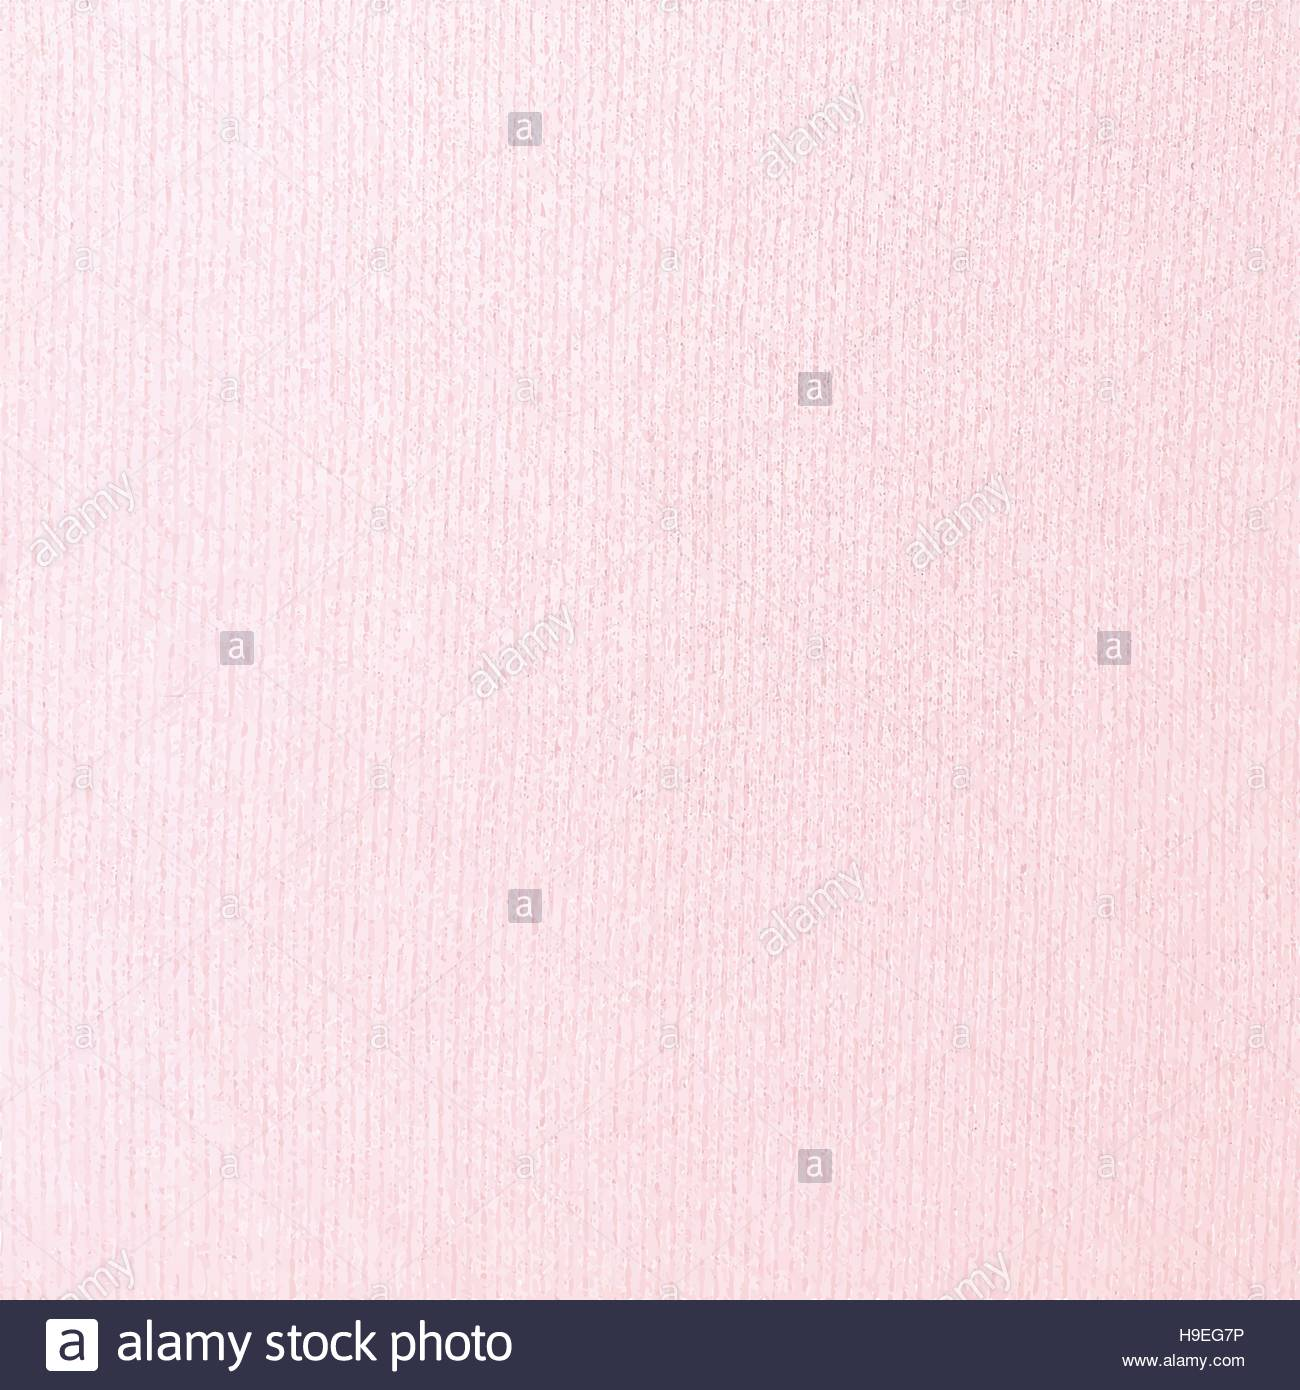 Vector. Fabric texture for your design, concept, textile, banner, bussiness cards and others. - Stock Vector